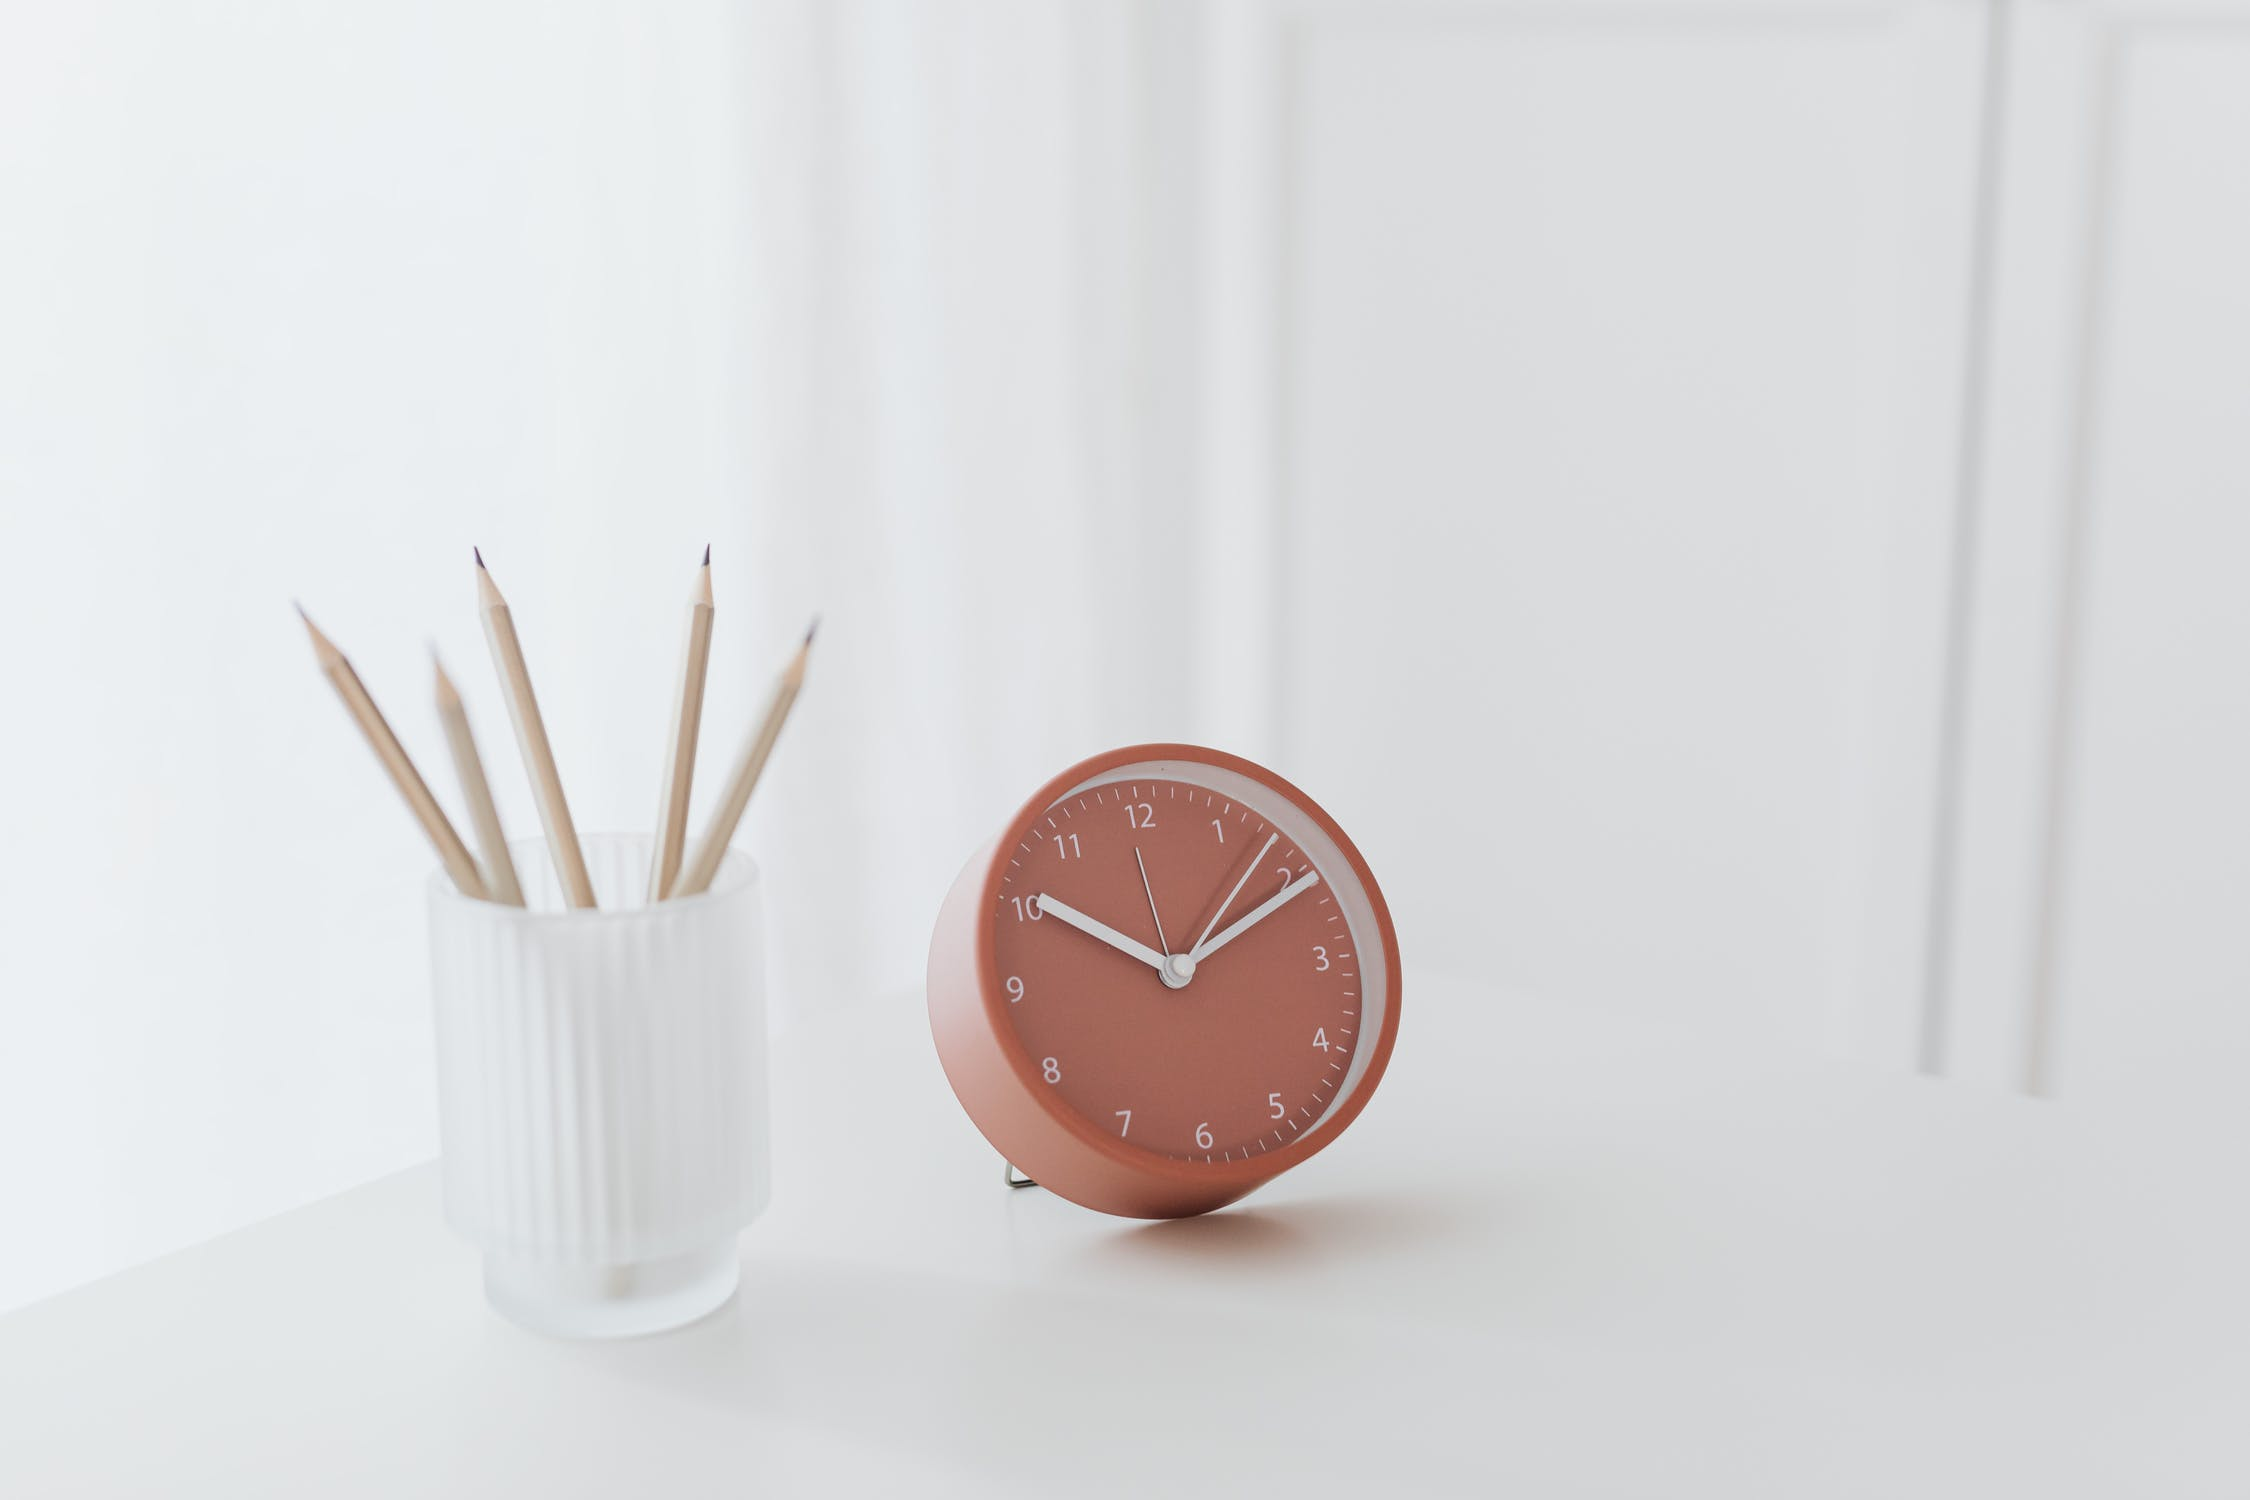 Peach clock on white table depicting 24 hour nature of customer support with conversational ai